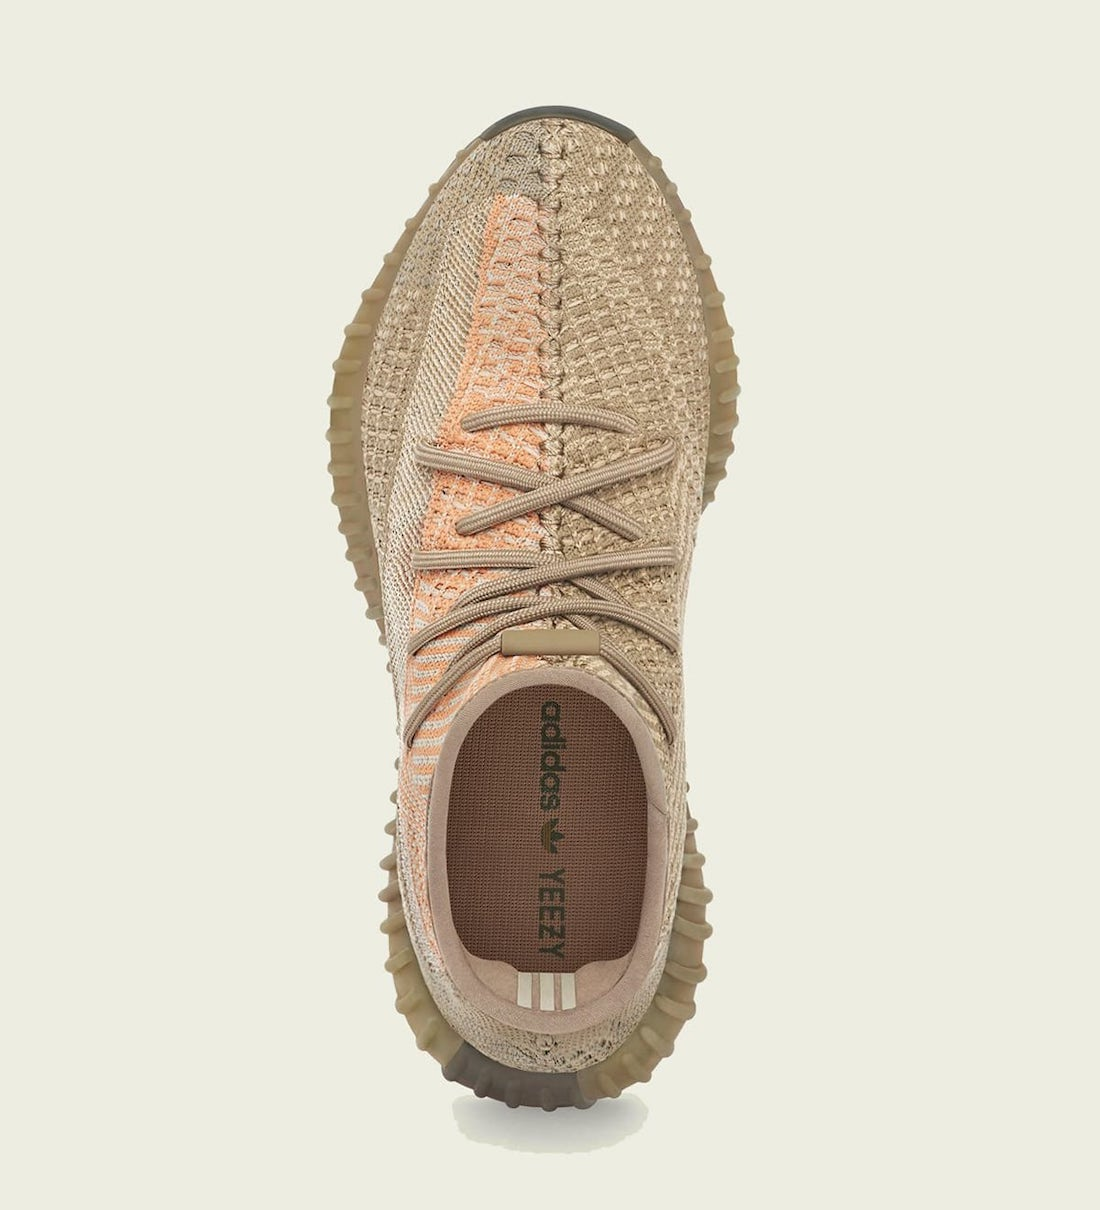 adidas-Yeezy-Boost-350-V2-Sand-Taupe-FZ5240-Release-Date-2